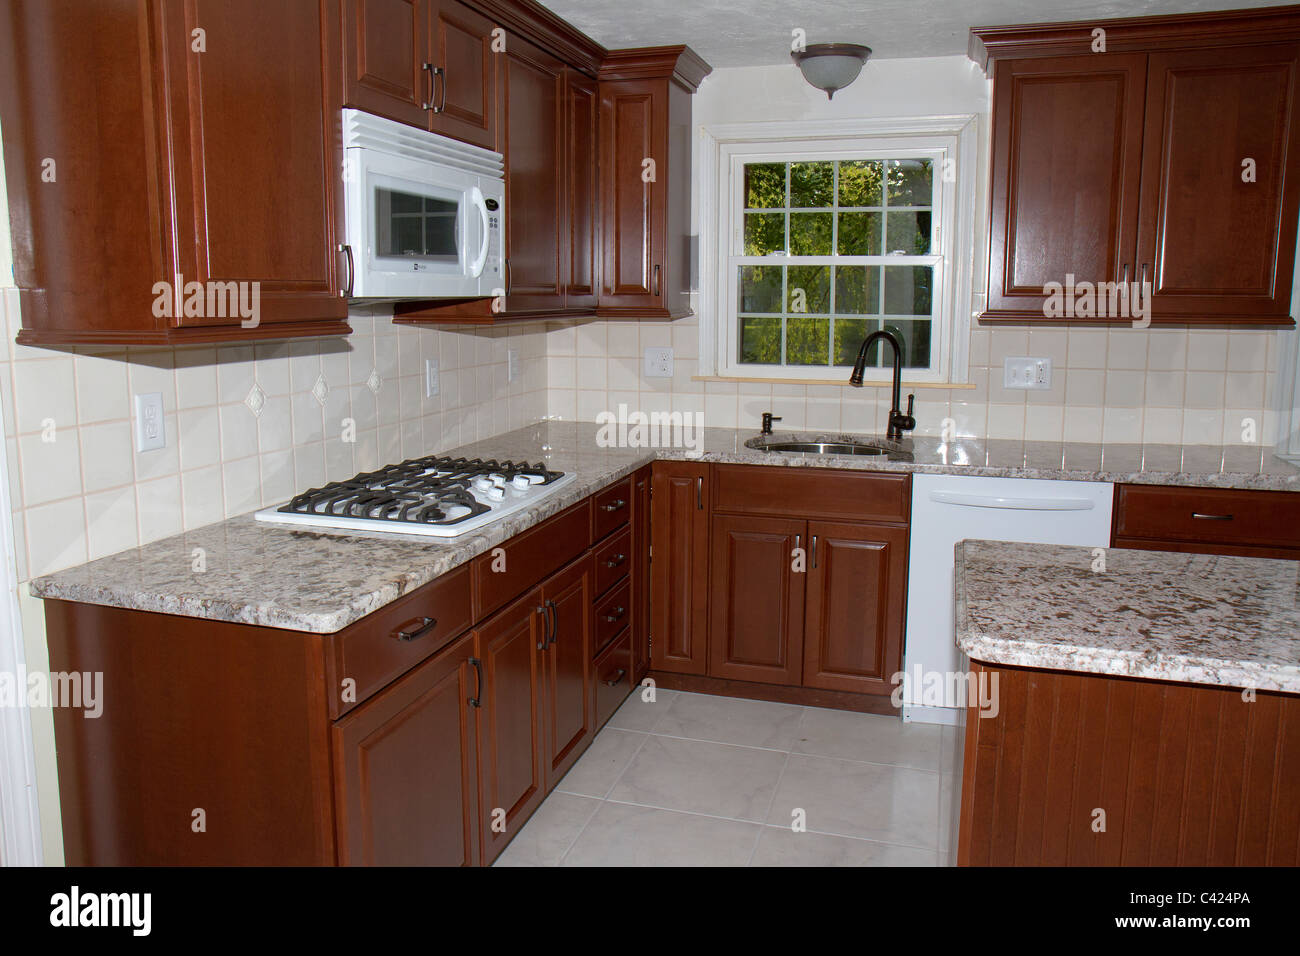 New cherry cabinets granite counter tops and ceramic tile floor new cherry cabinets granite counter tops and ceramic tile floor stock photo 36927026 alamy dailygadgetfo Image collections